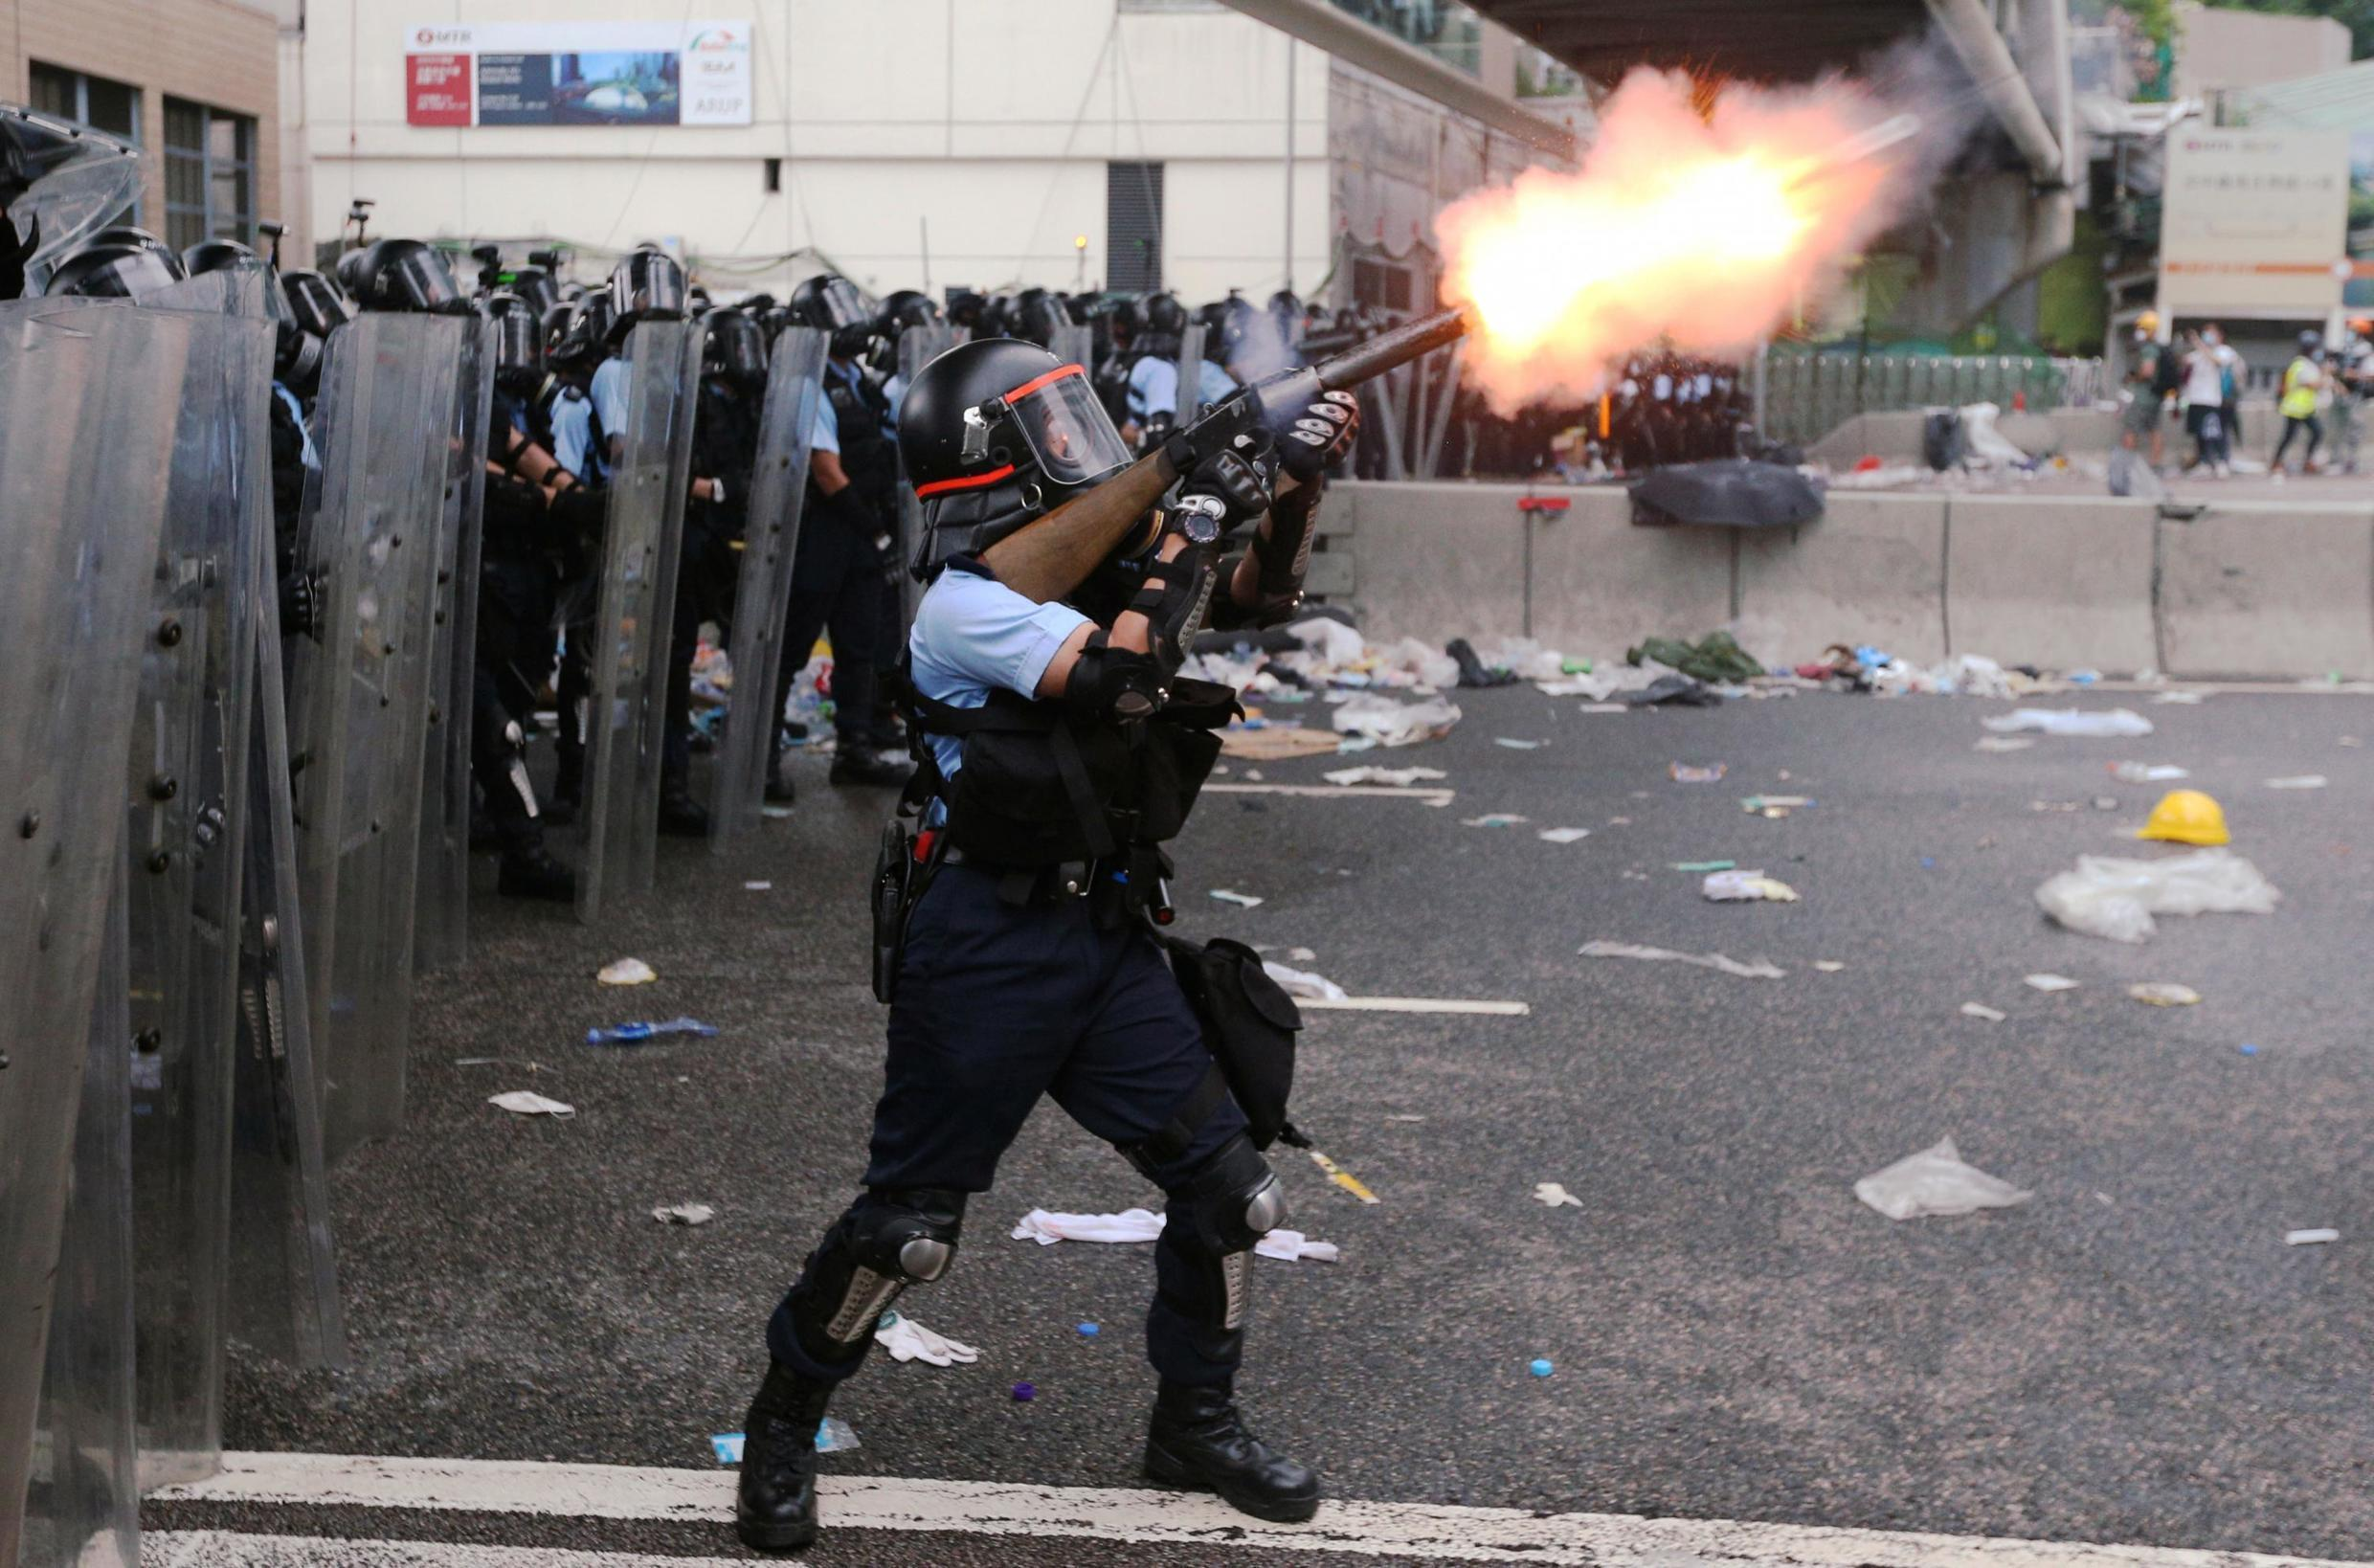 A police officer fires tear gas at protesters in Hong Kong on 12 June.